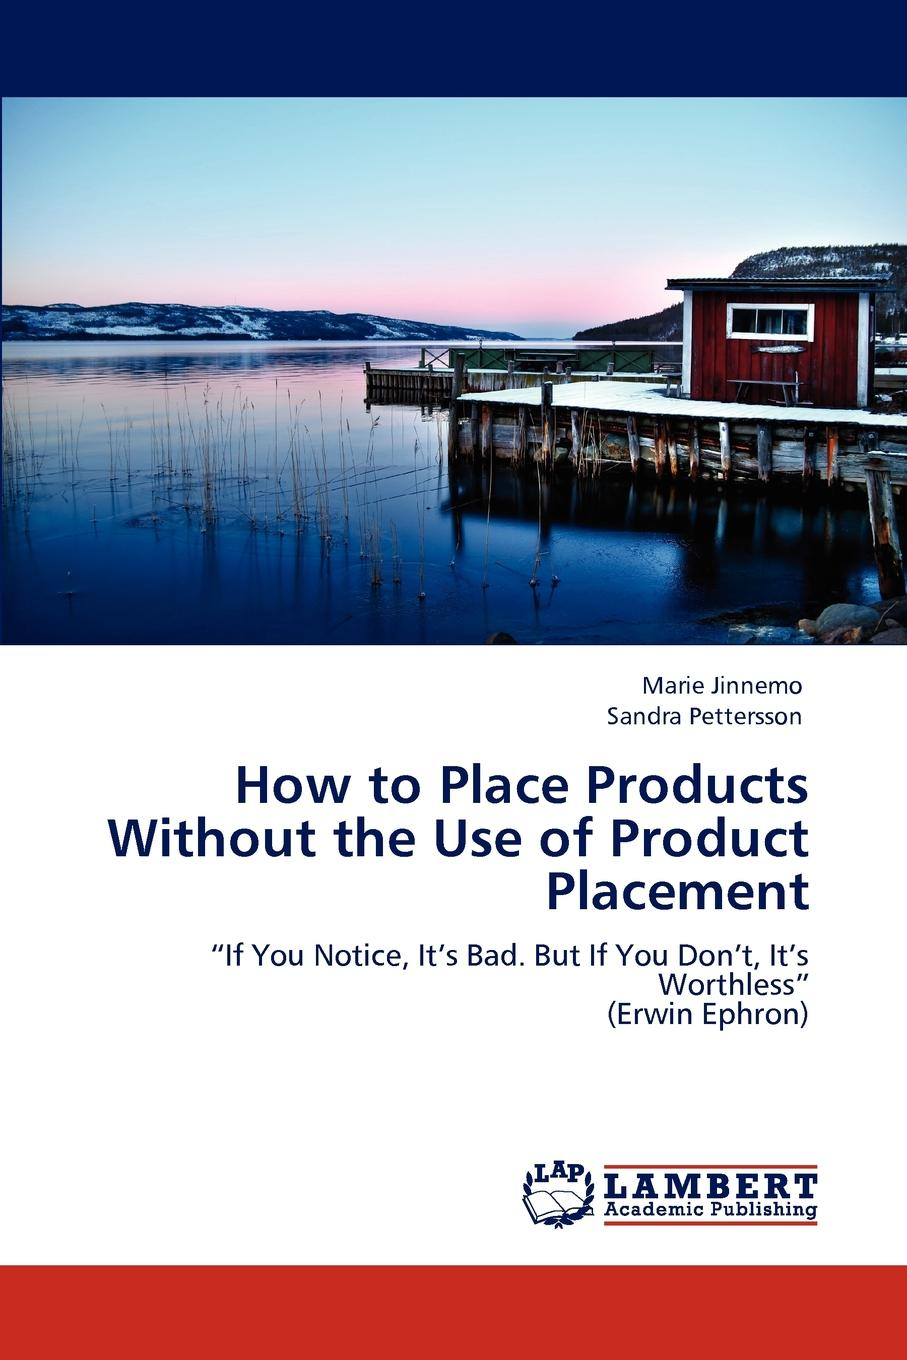 Marie Jinnemo, Sandra Pettersson How to Place Products Without the Use of Product Placement danielle sprengnagel geschickt platziert product placement als werbeform